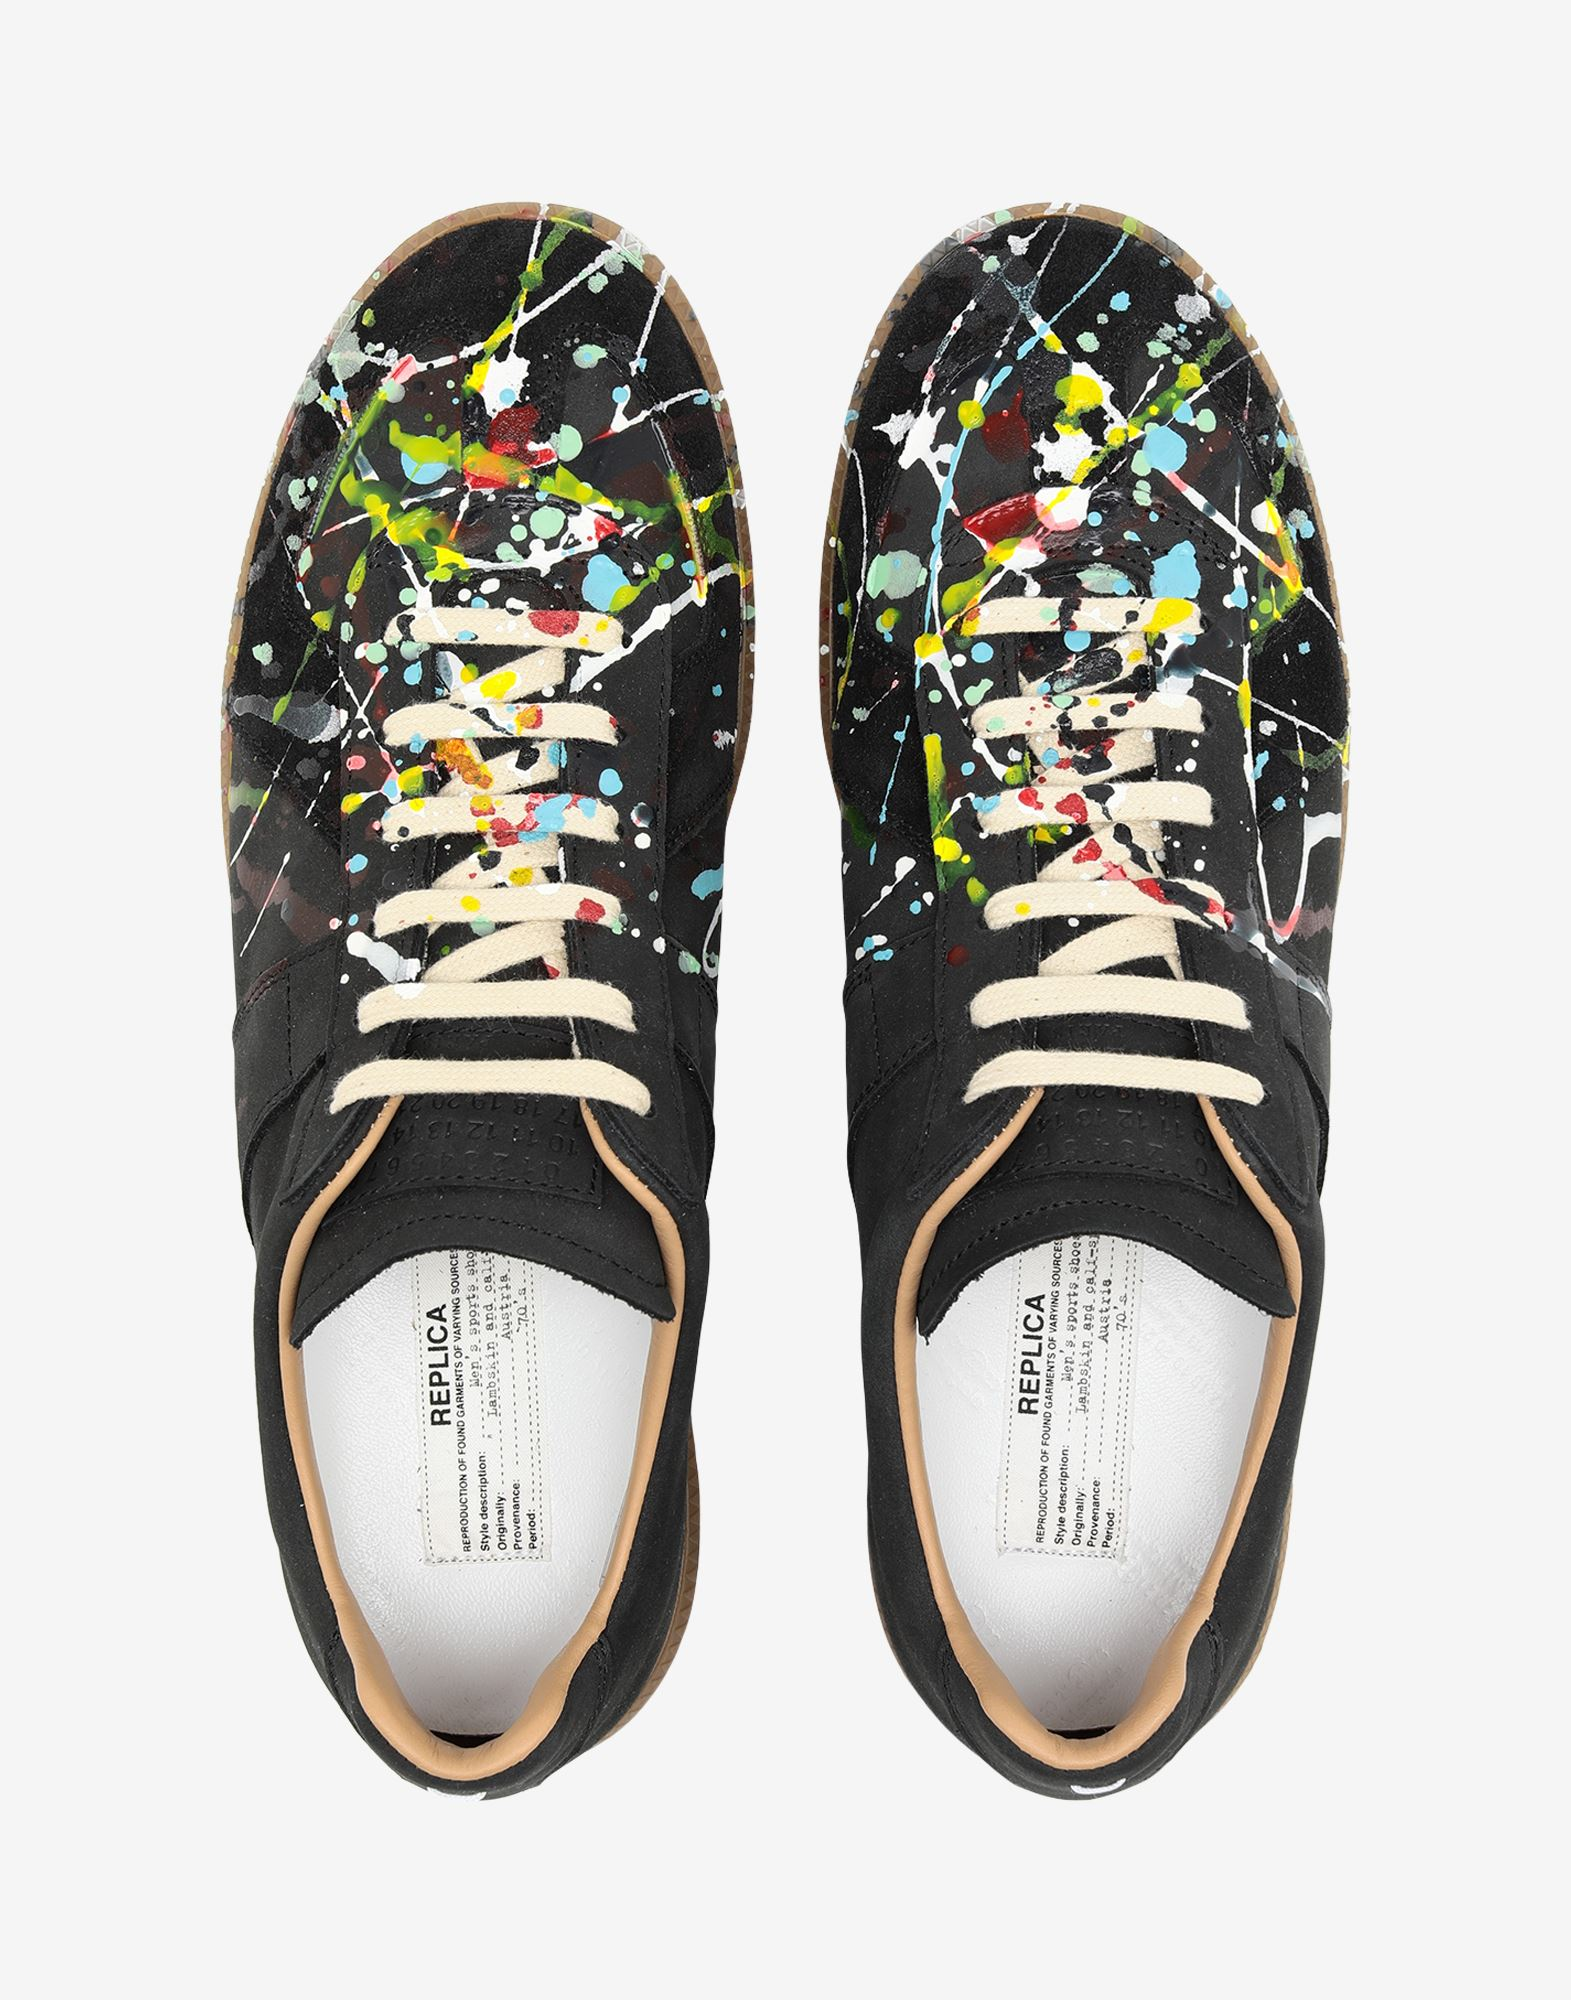 MAISON MARGIELA Suede paint drop 'Replica' sneakers Sneakers Man a